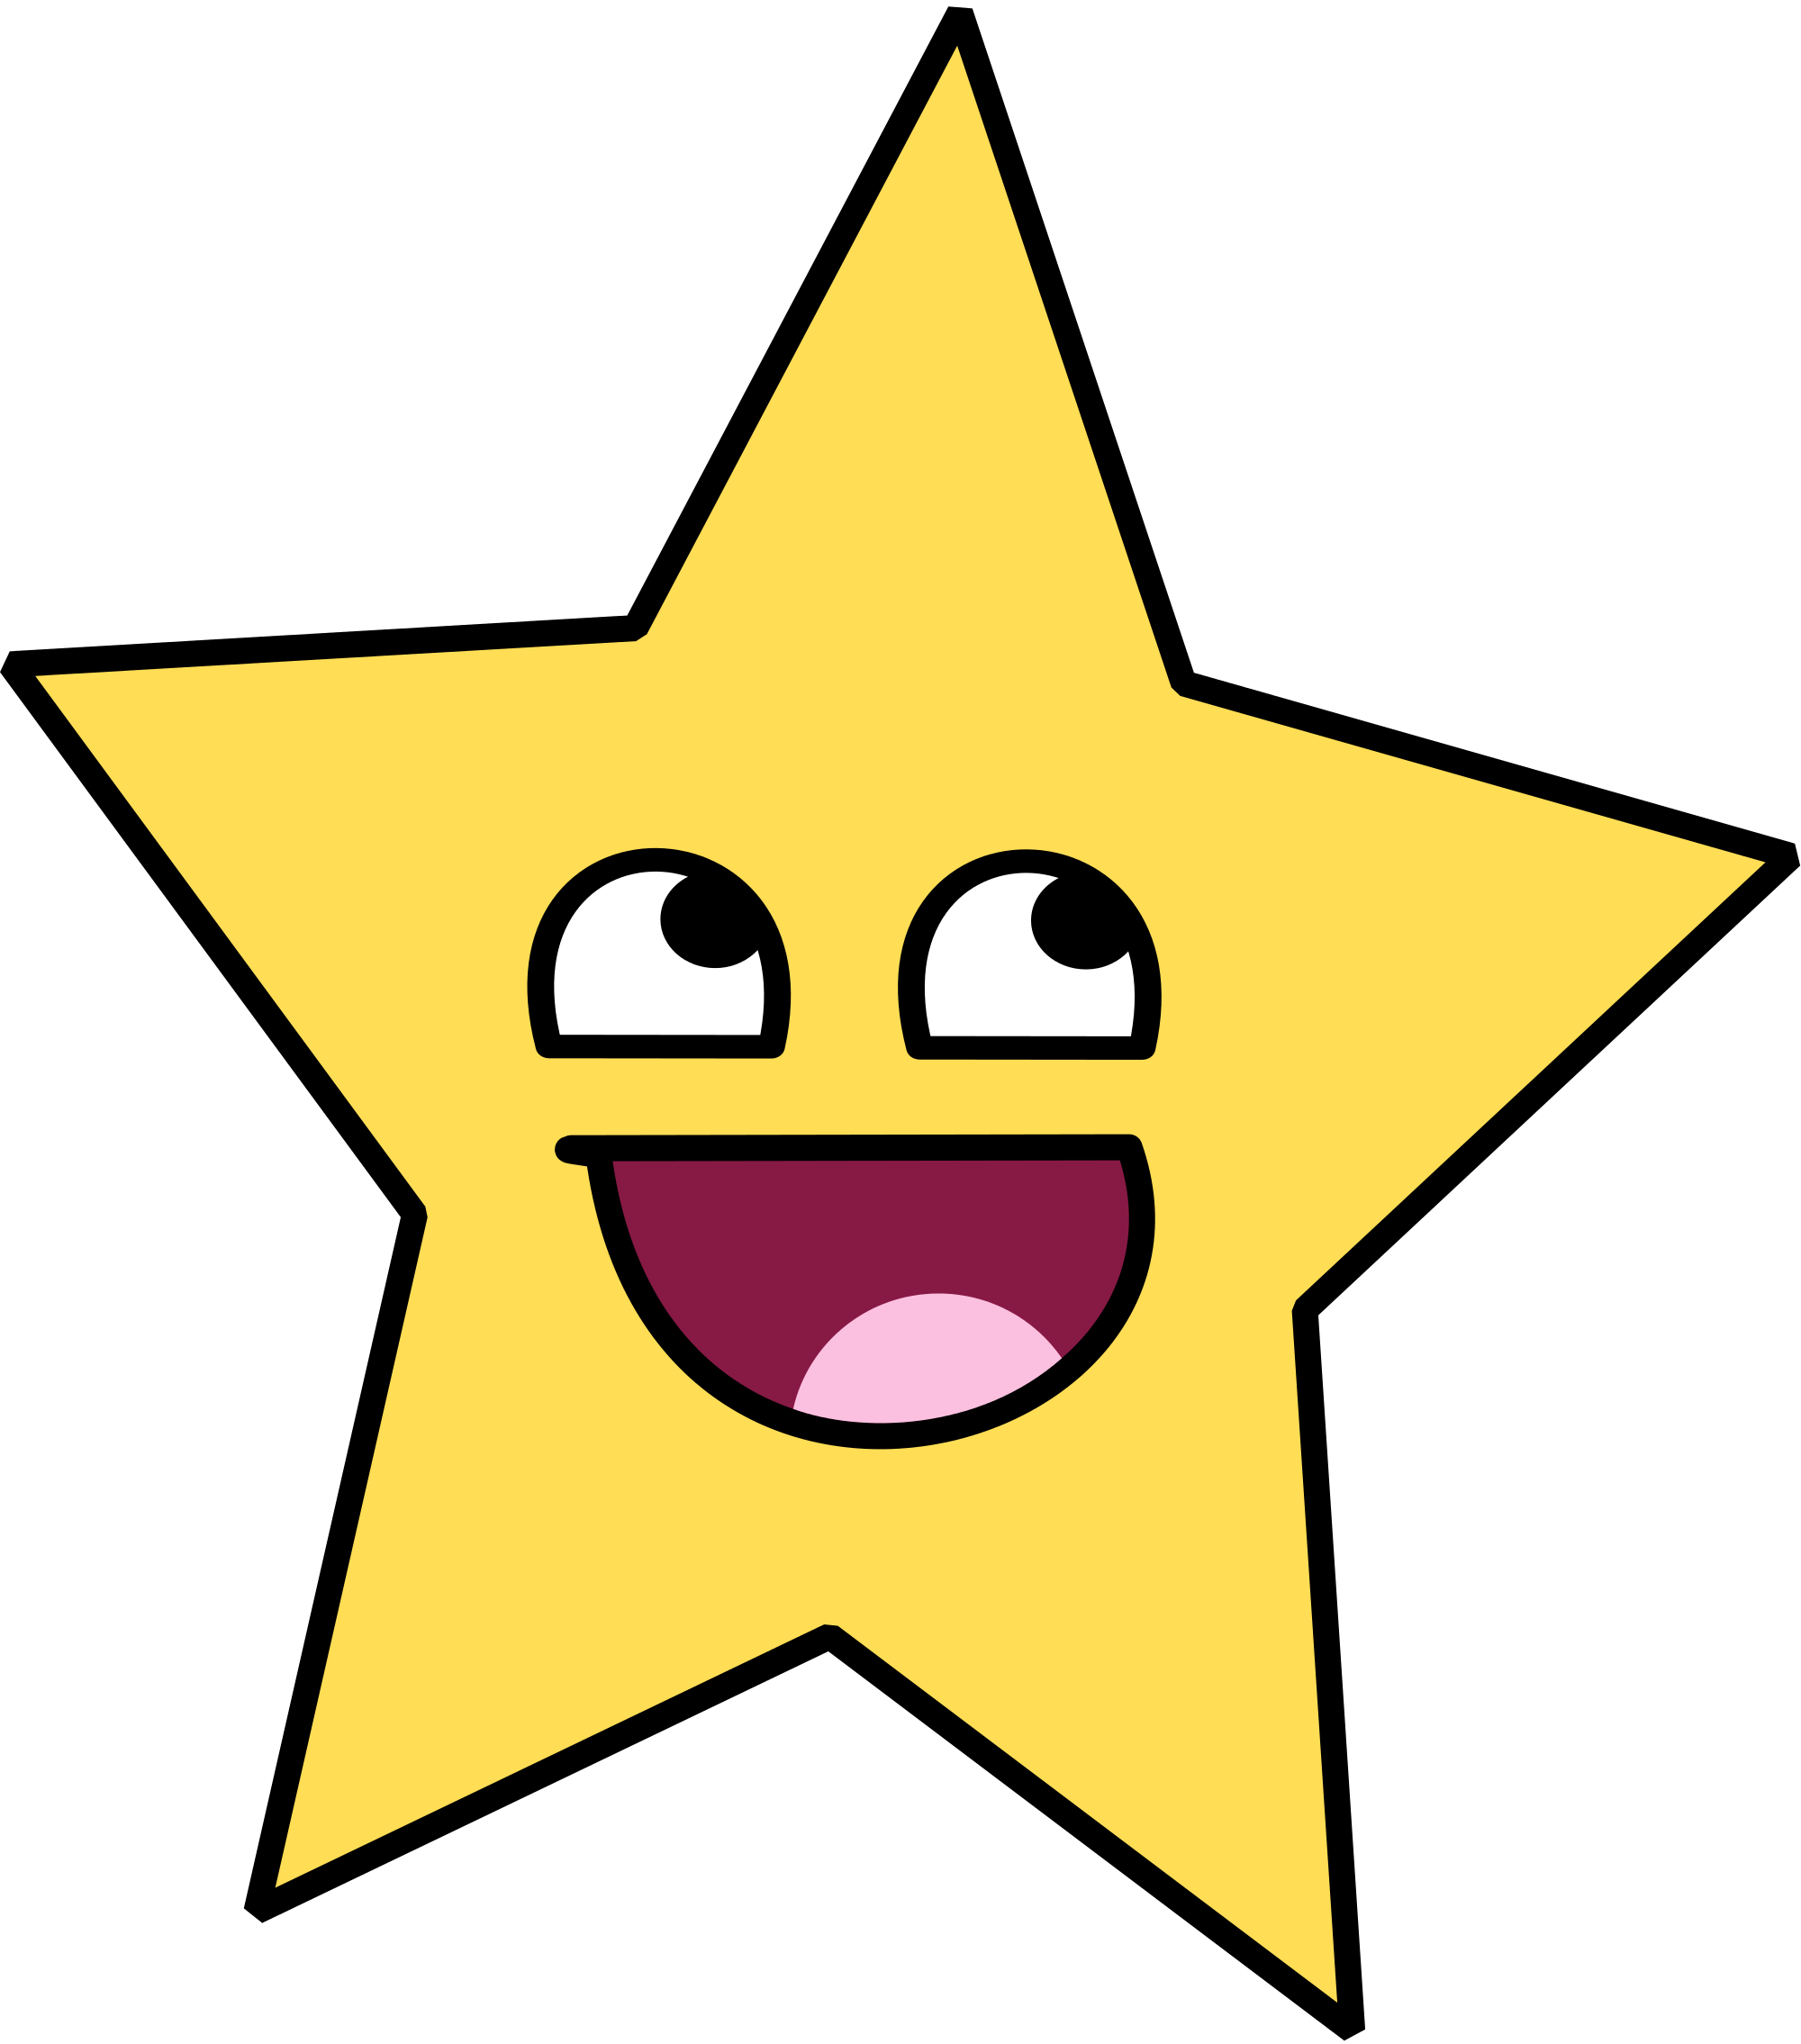 Cartoon star png. Pictures of stars x